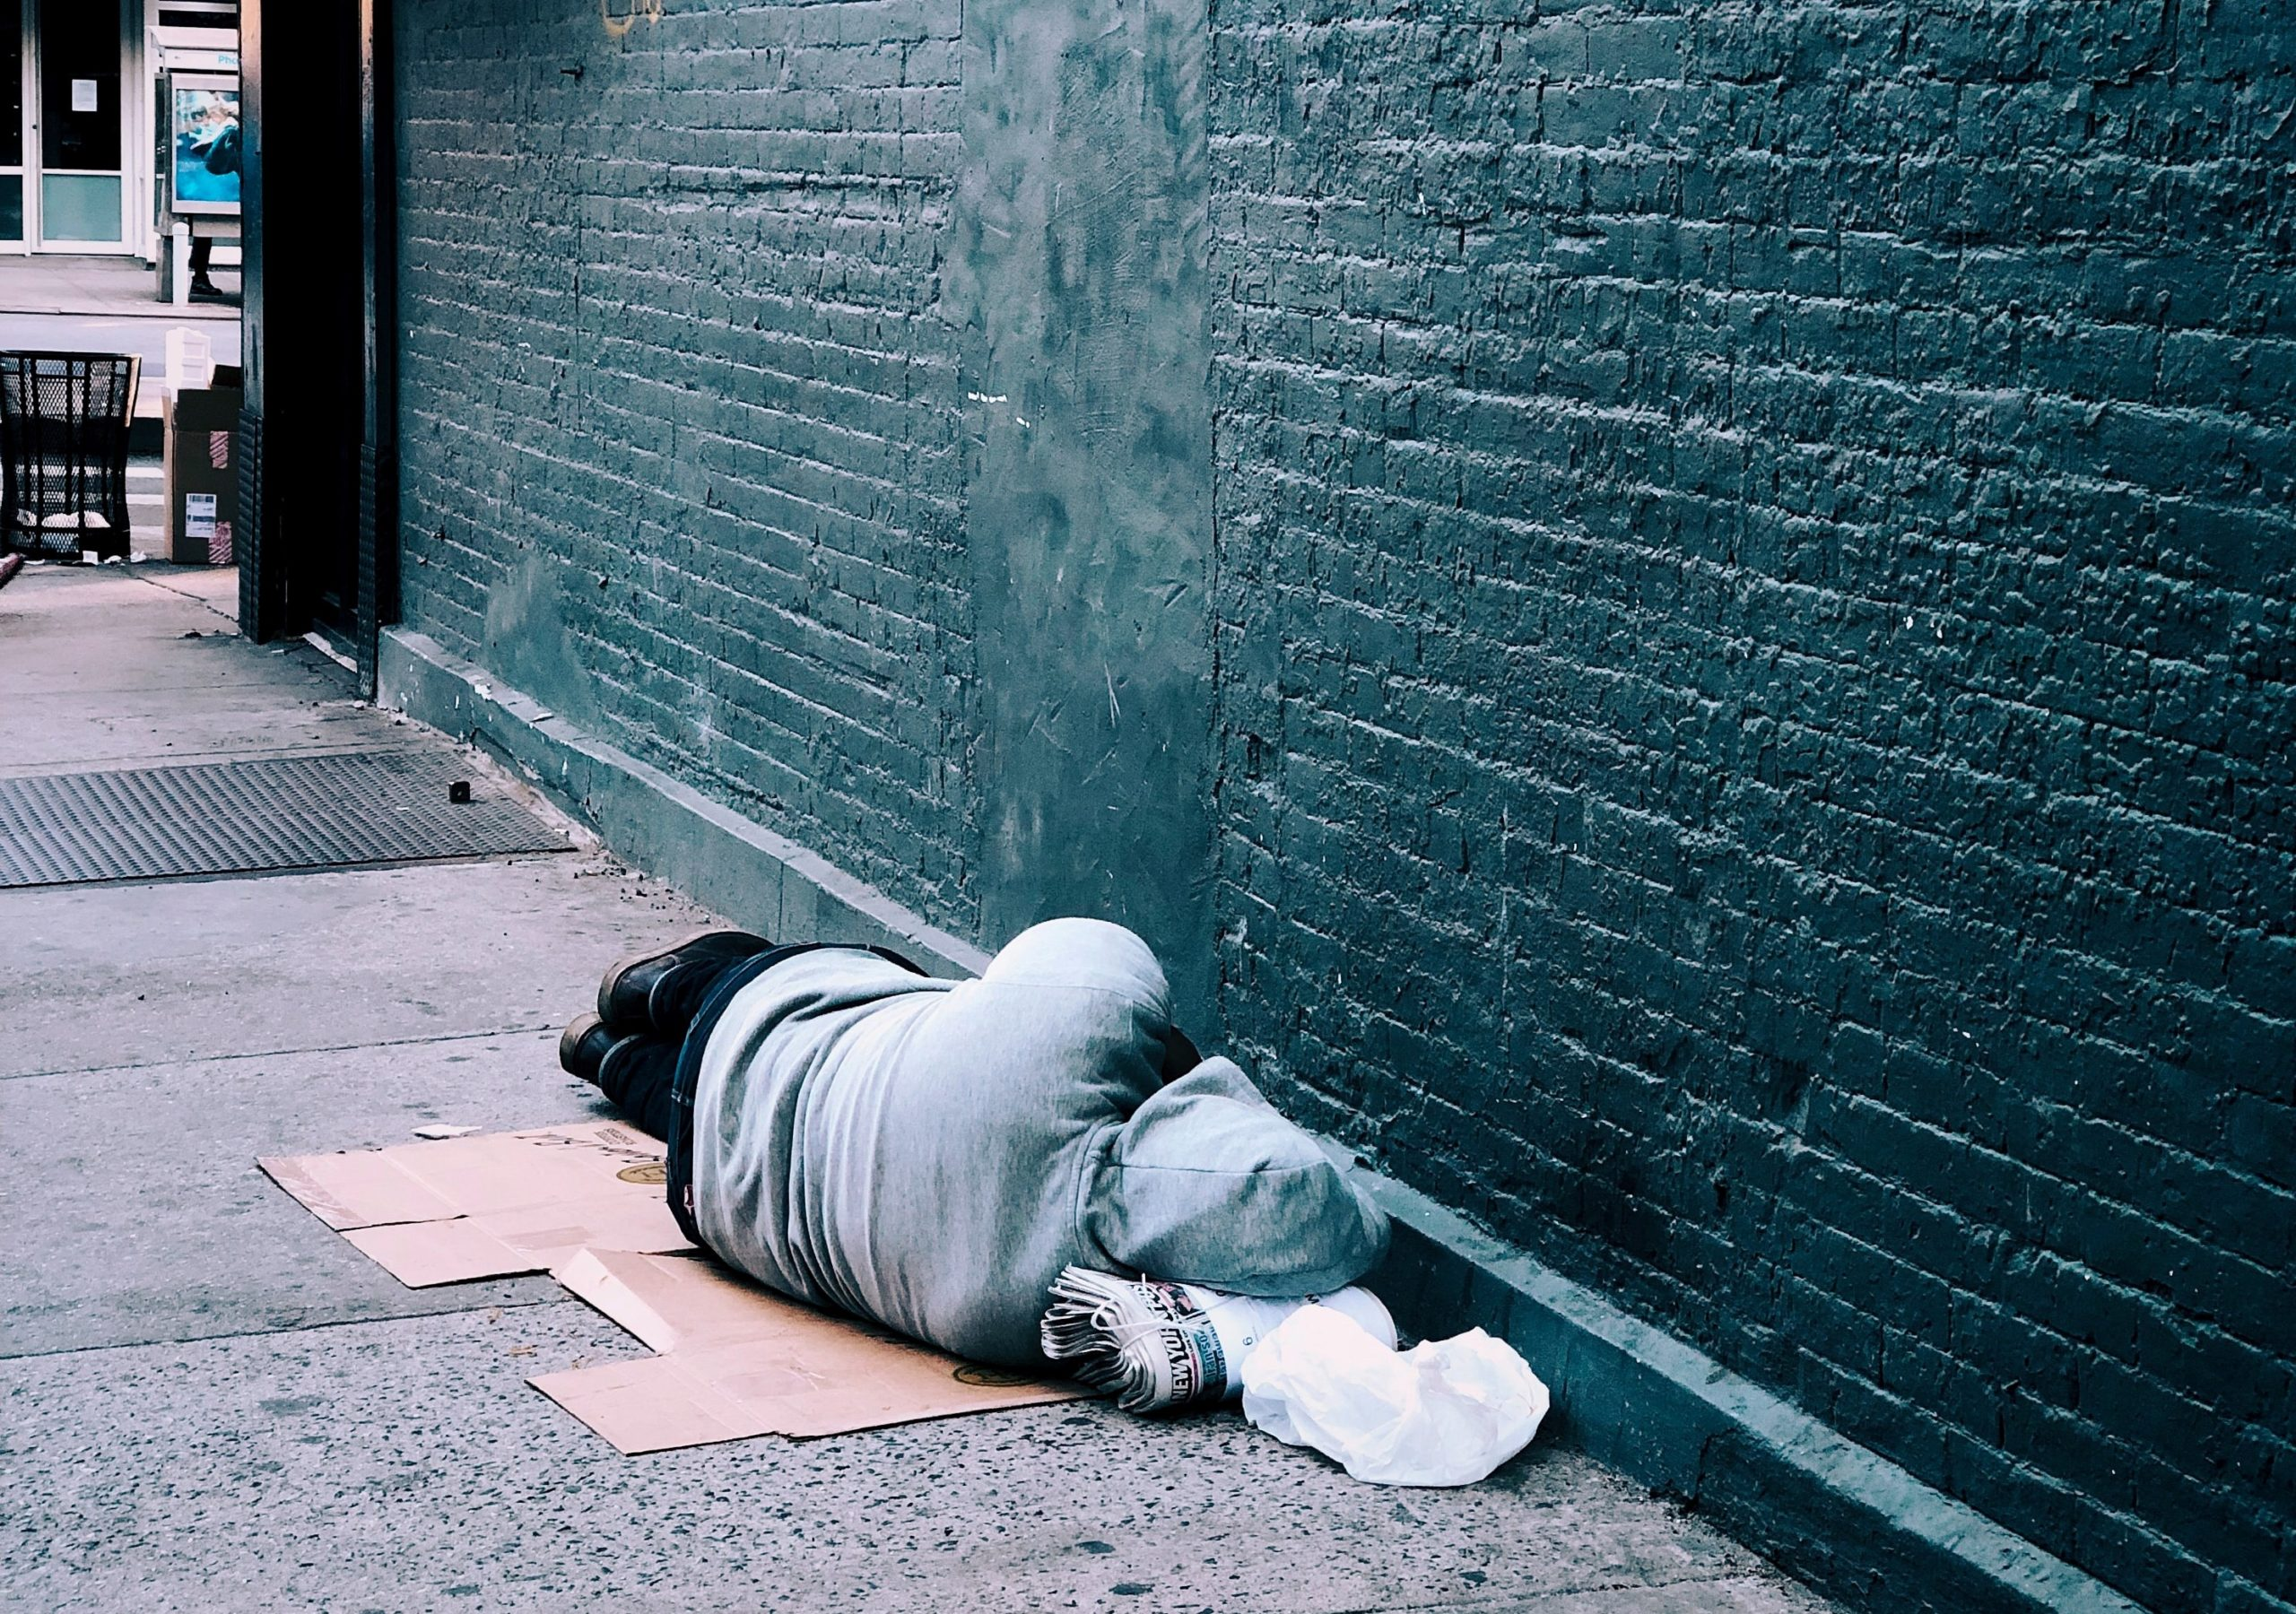 Man rough sleeping up against a wall on the street